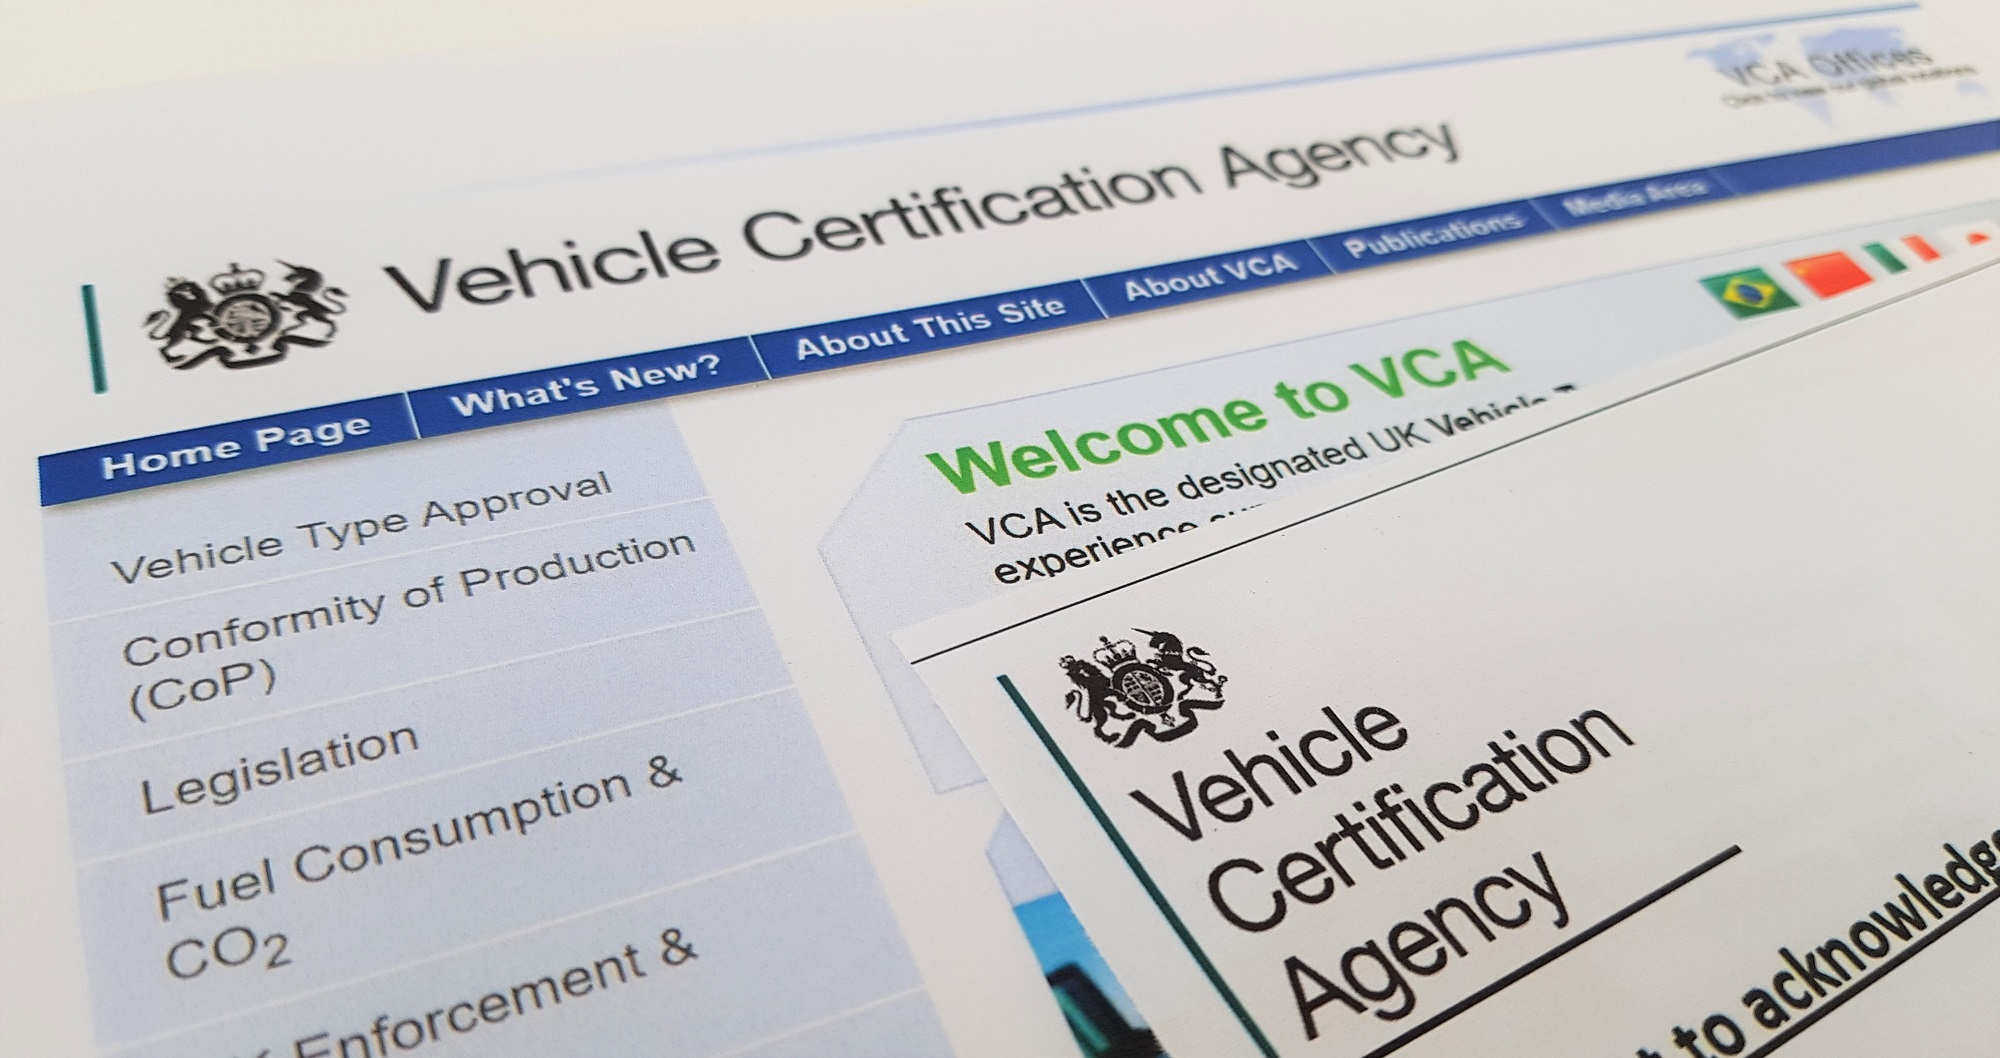 VFS Type Approval from Vehicle Certificate Agency